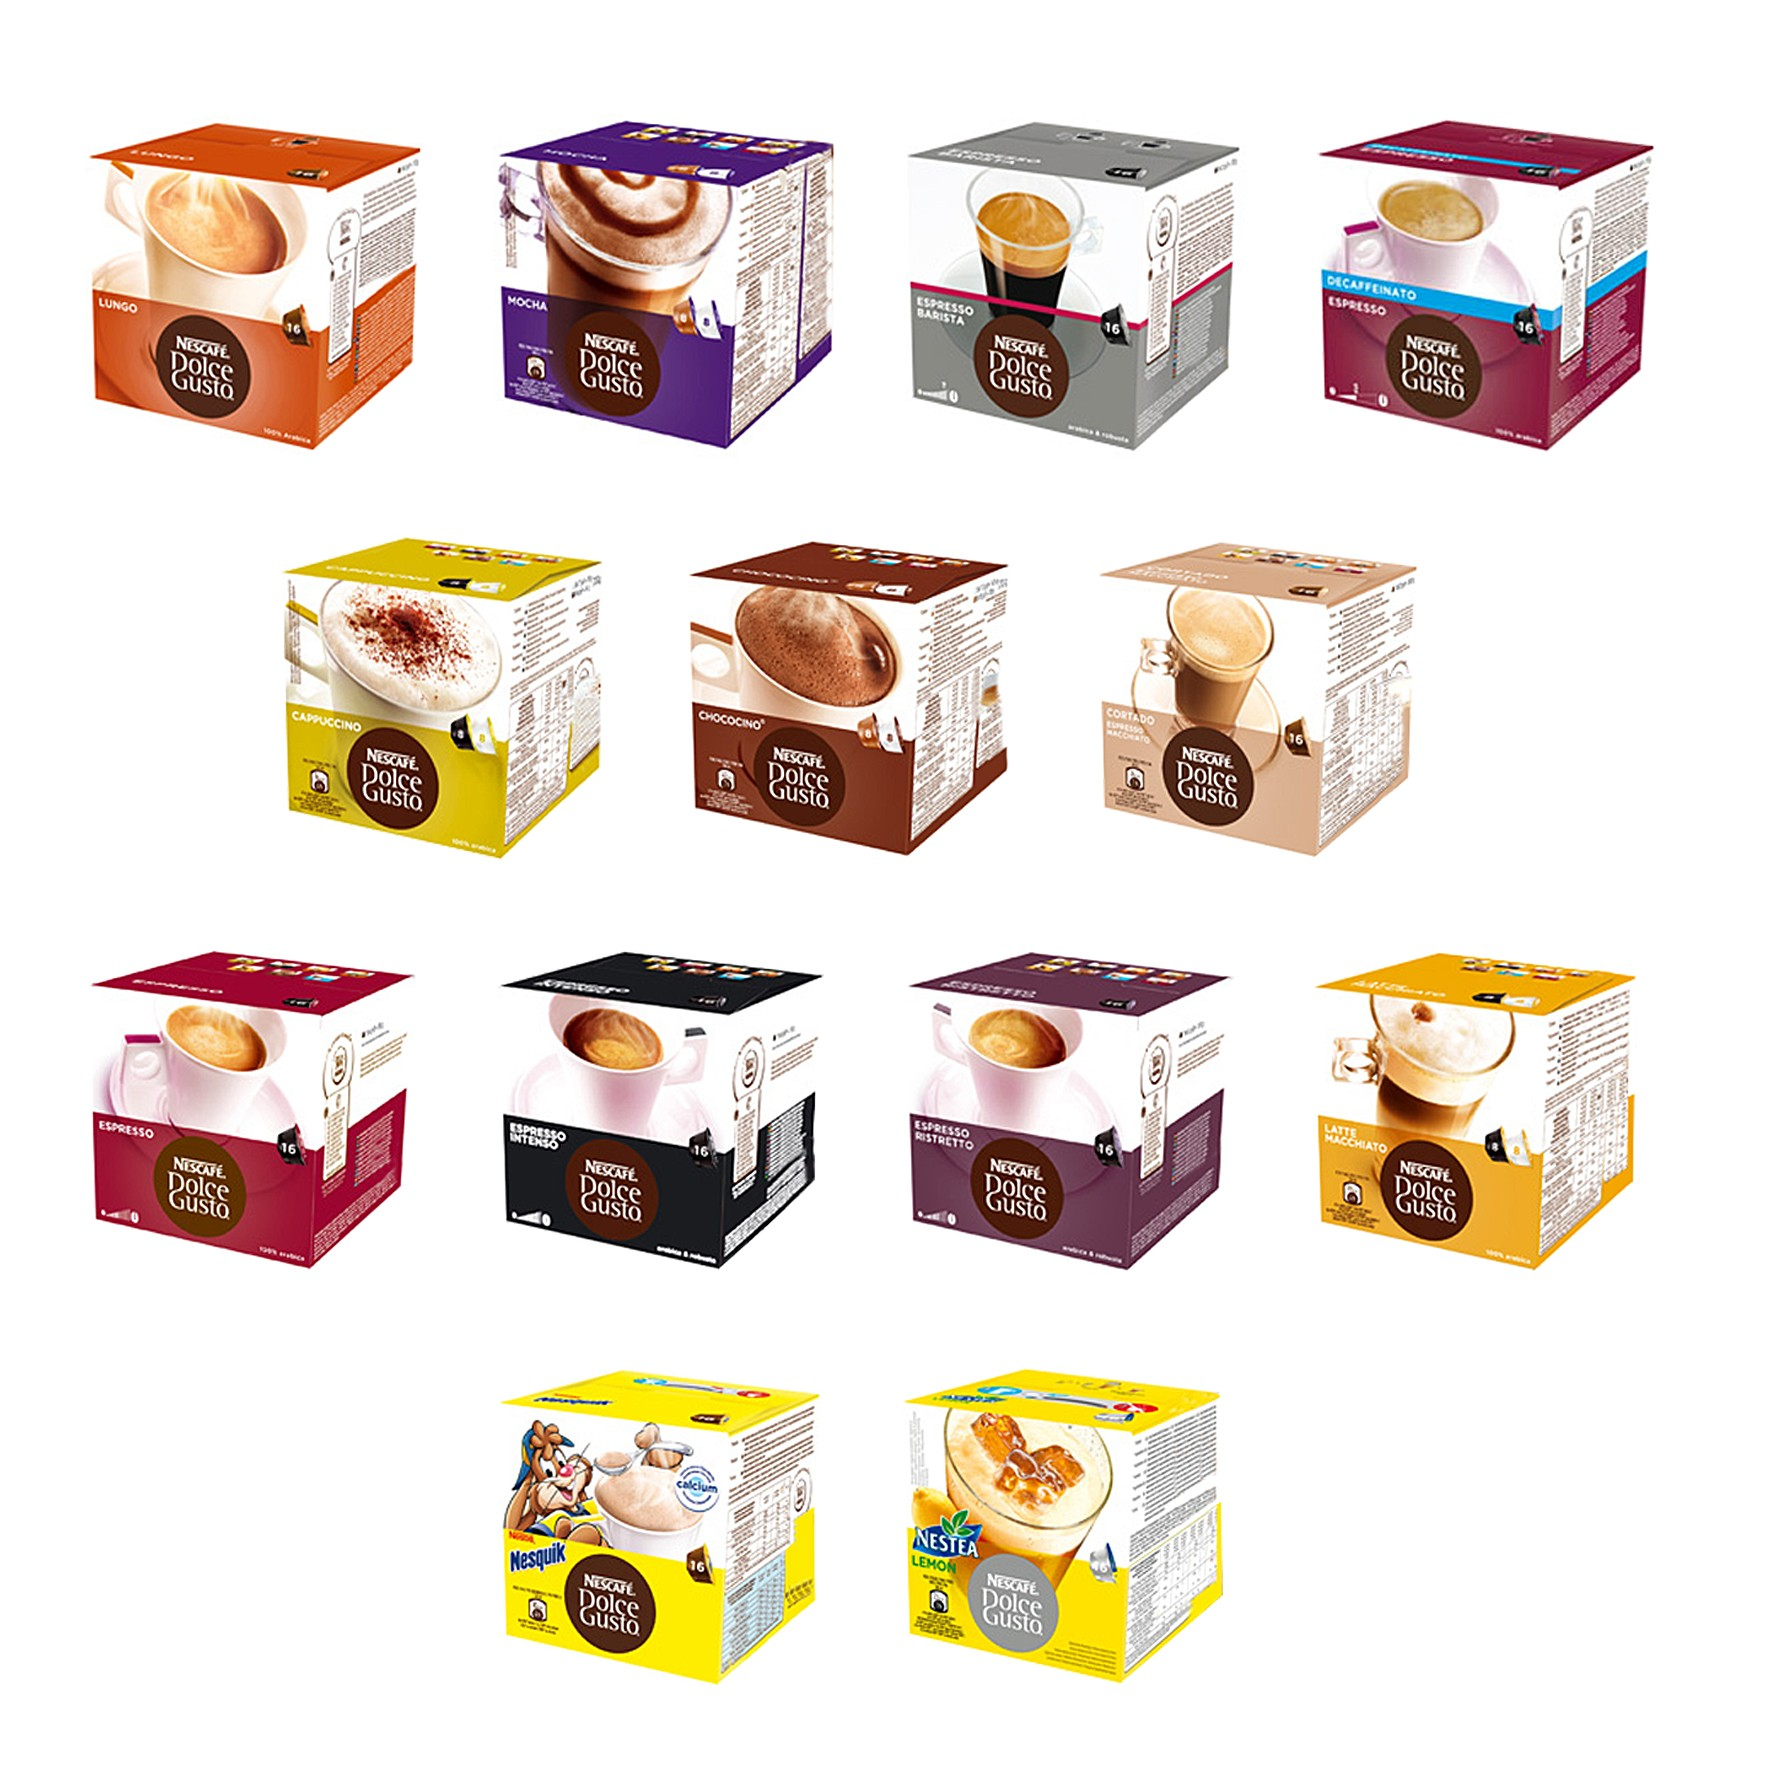 96 Coffee Capsules NESCAFE' DOLCE GUSTO Choose Your Flavors